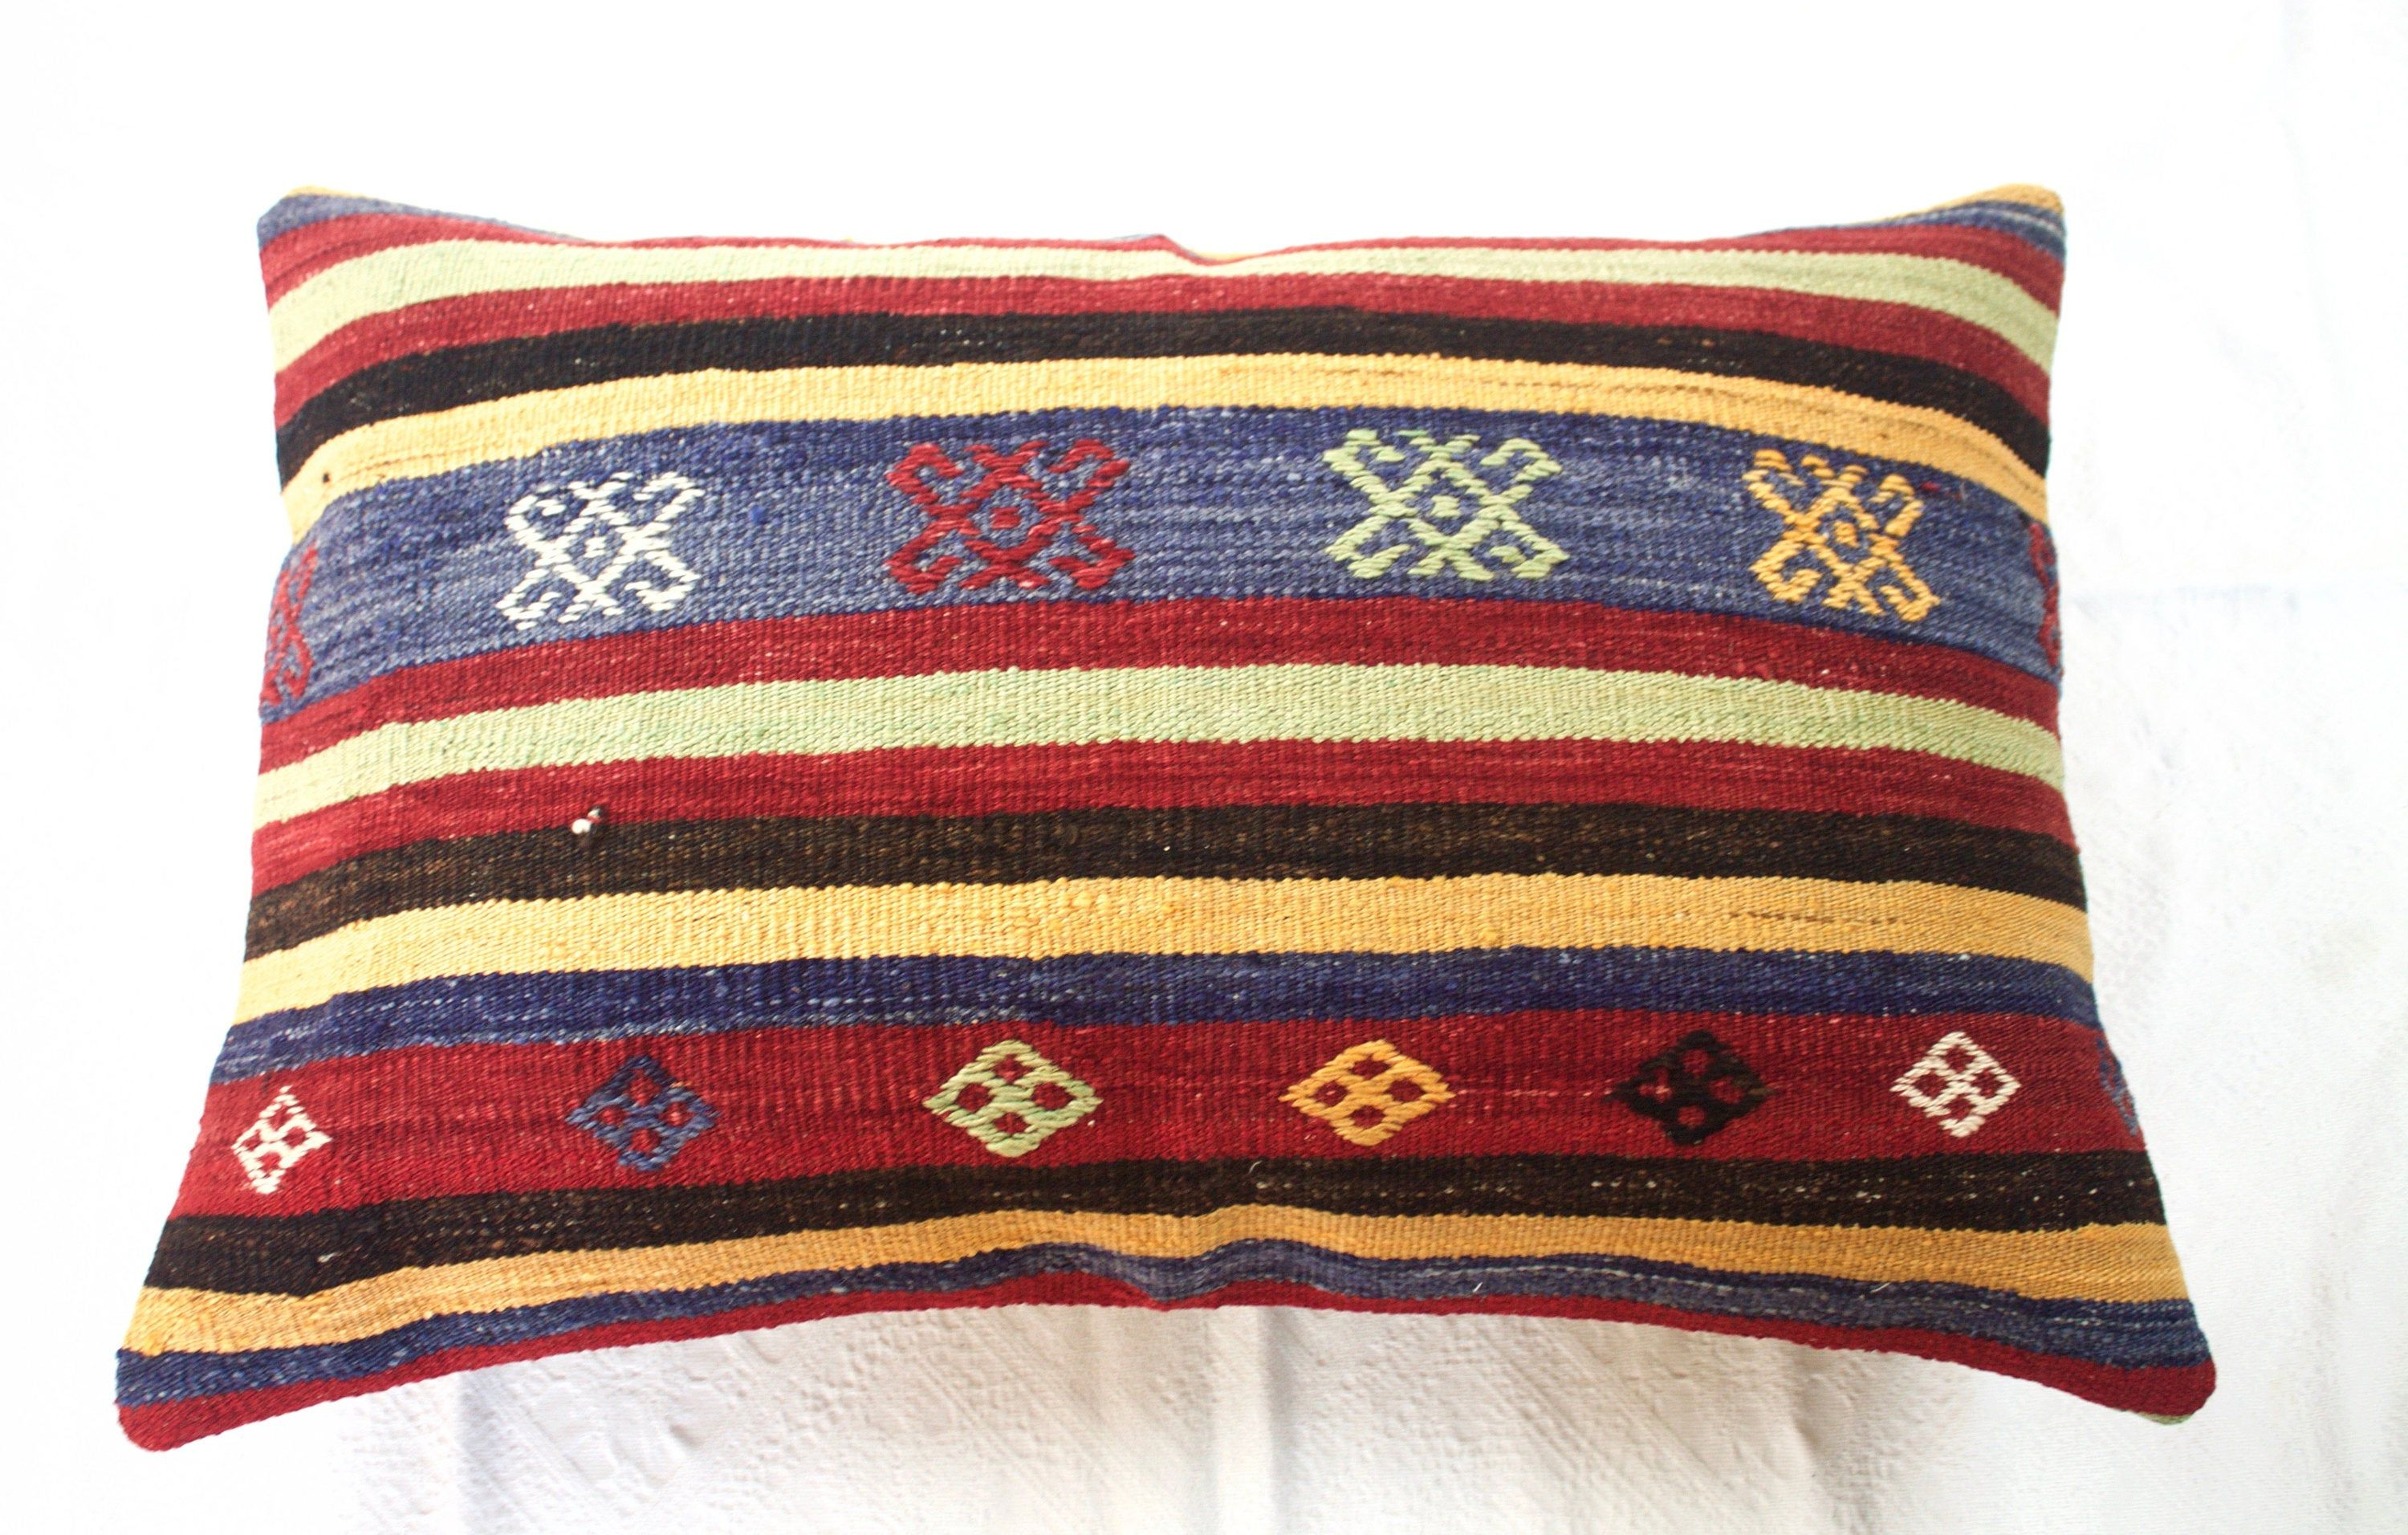 24x35 Kilim Pillow Kilim Floor Pillow Large Red And Blue Pillow